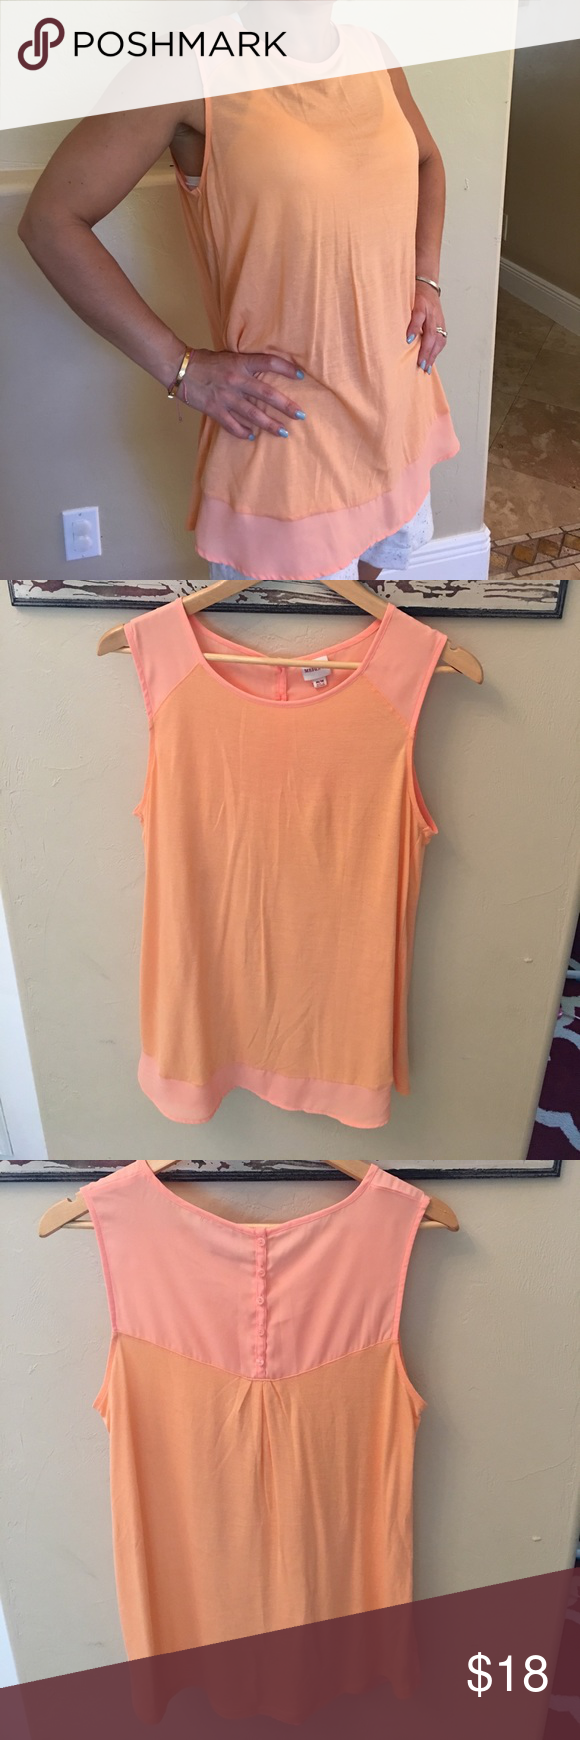 NWOT merona blouse Adorable never worn orange top. Nice button detail on the back Merona Tops Blouses